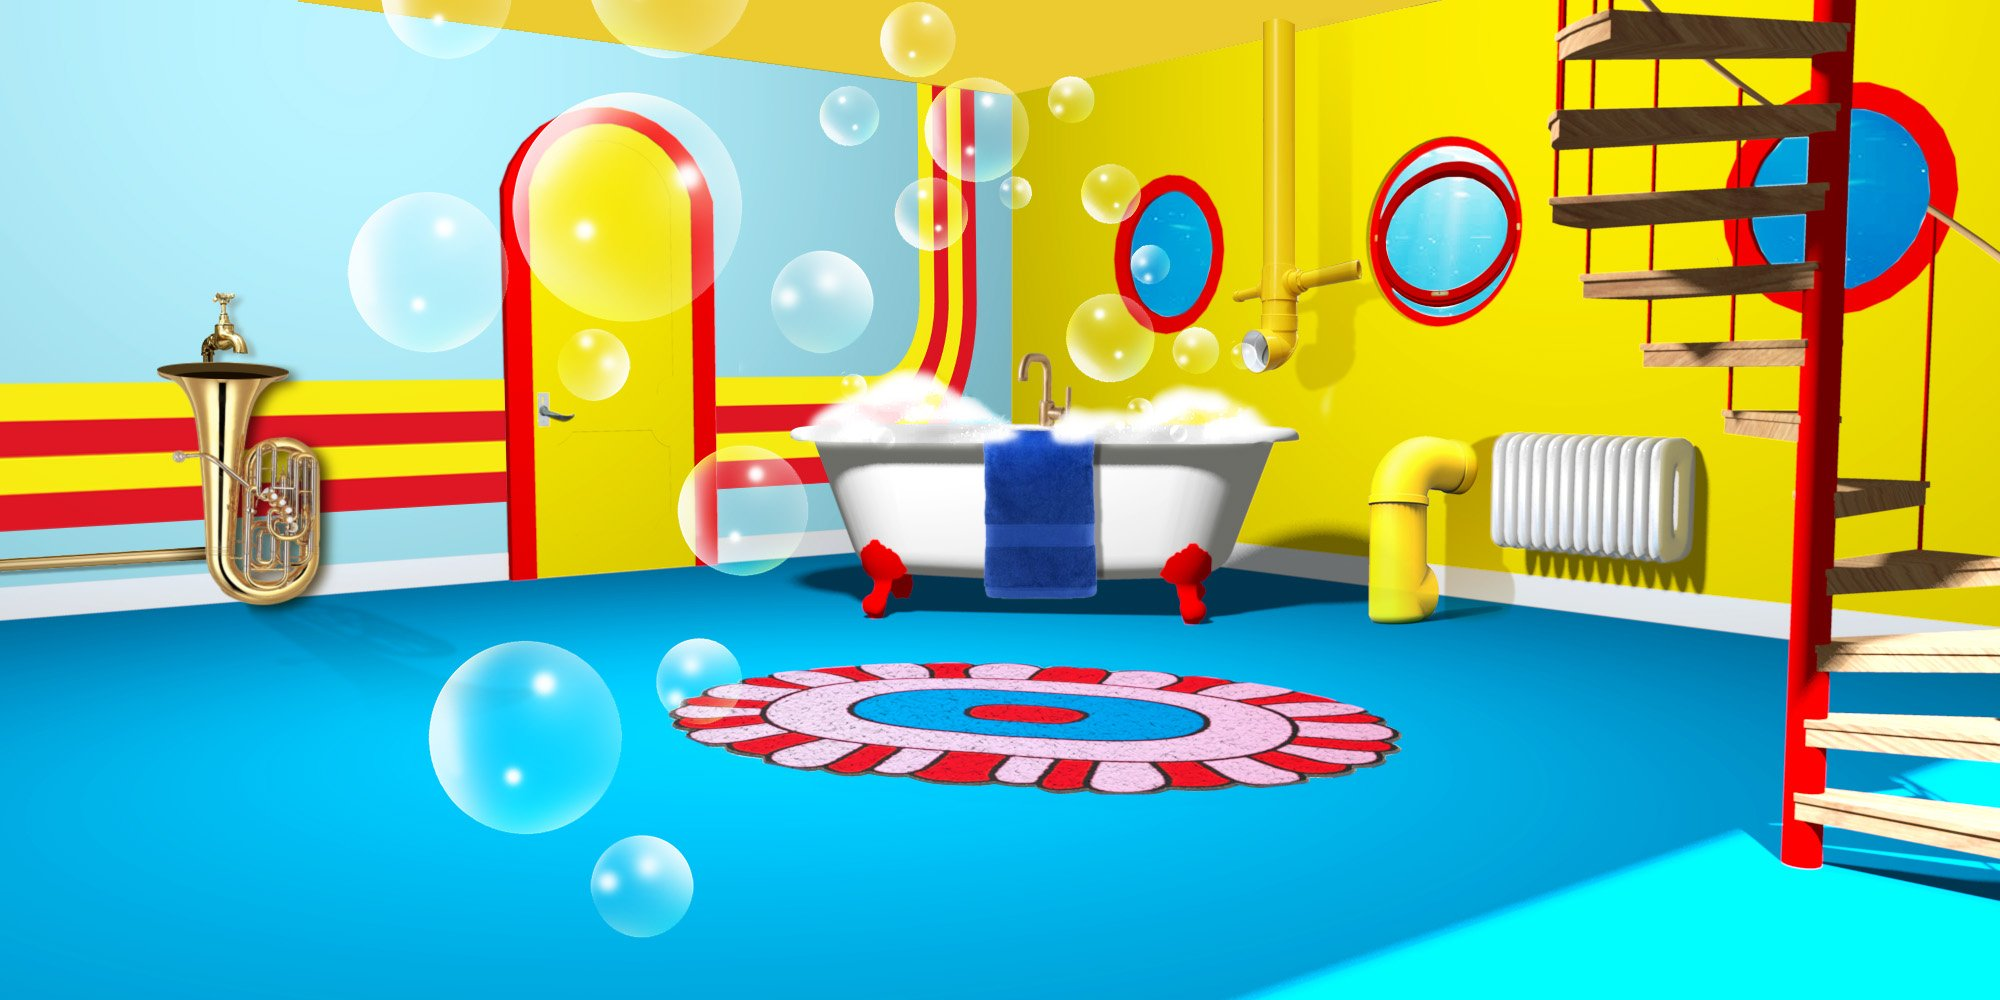 Featured Image - bathroom inspired by the Beatles' Yellow Submarine